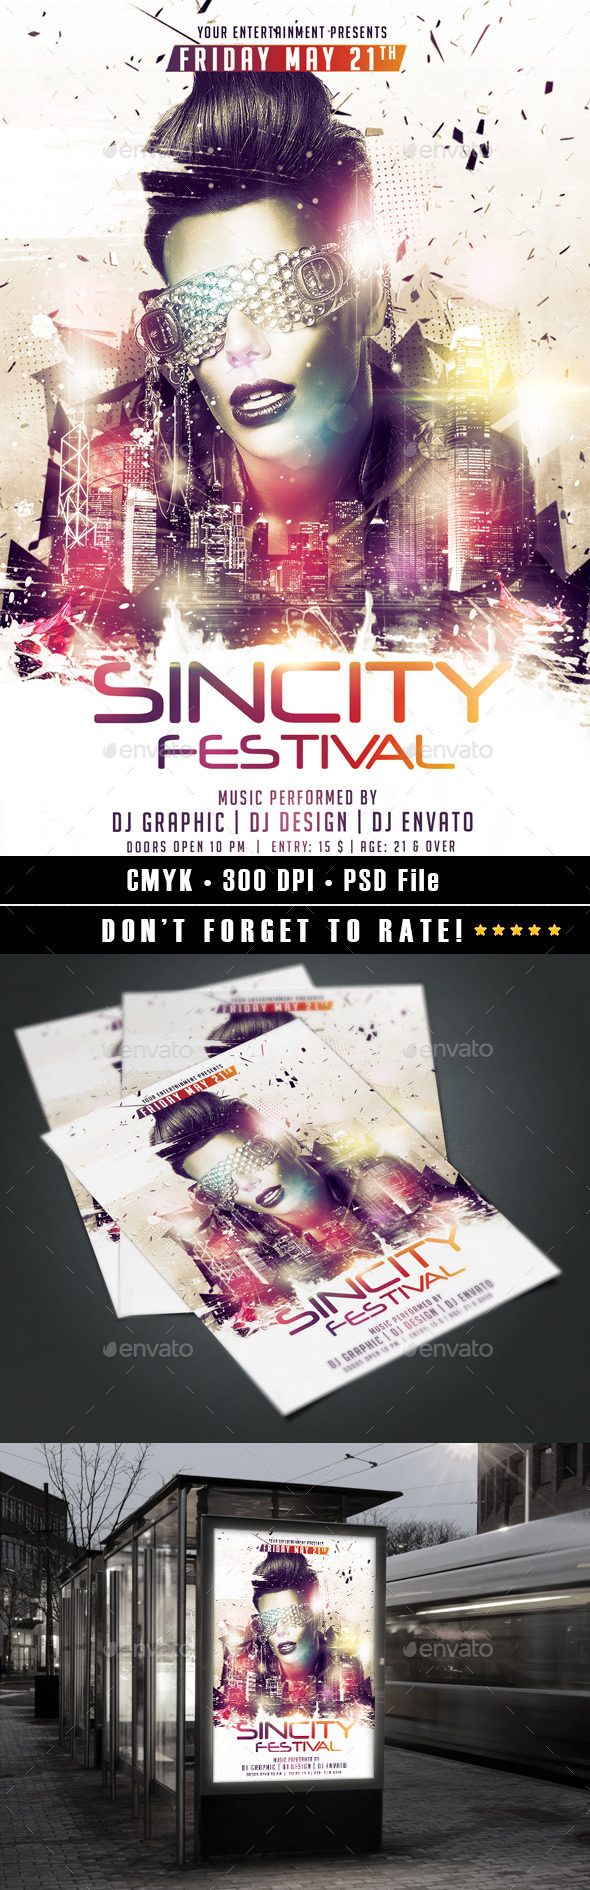 GraphicRiver Sincity Festival 10571074